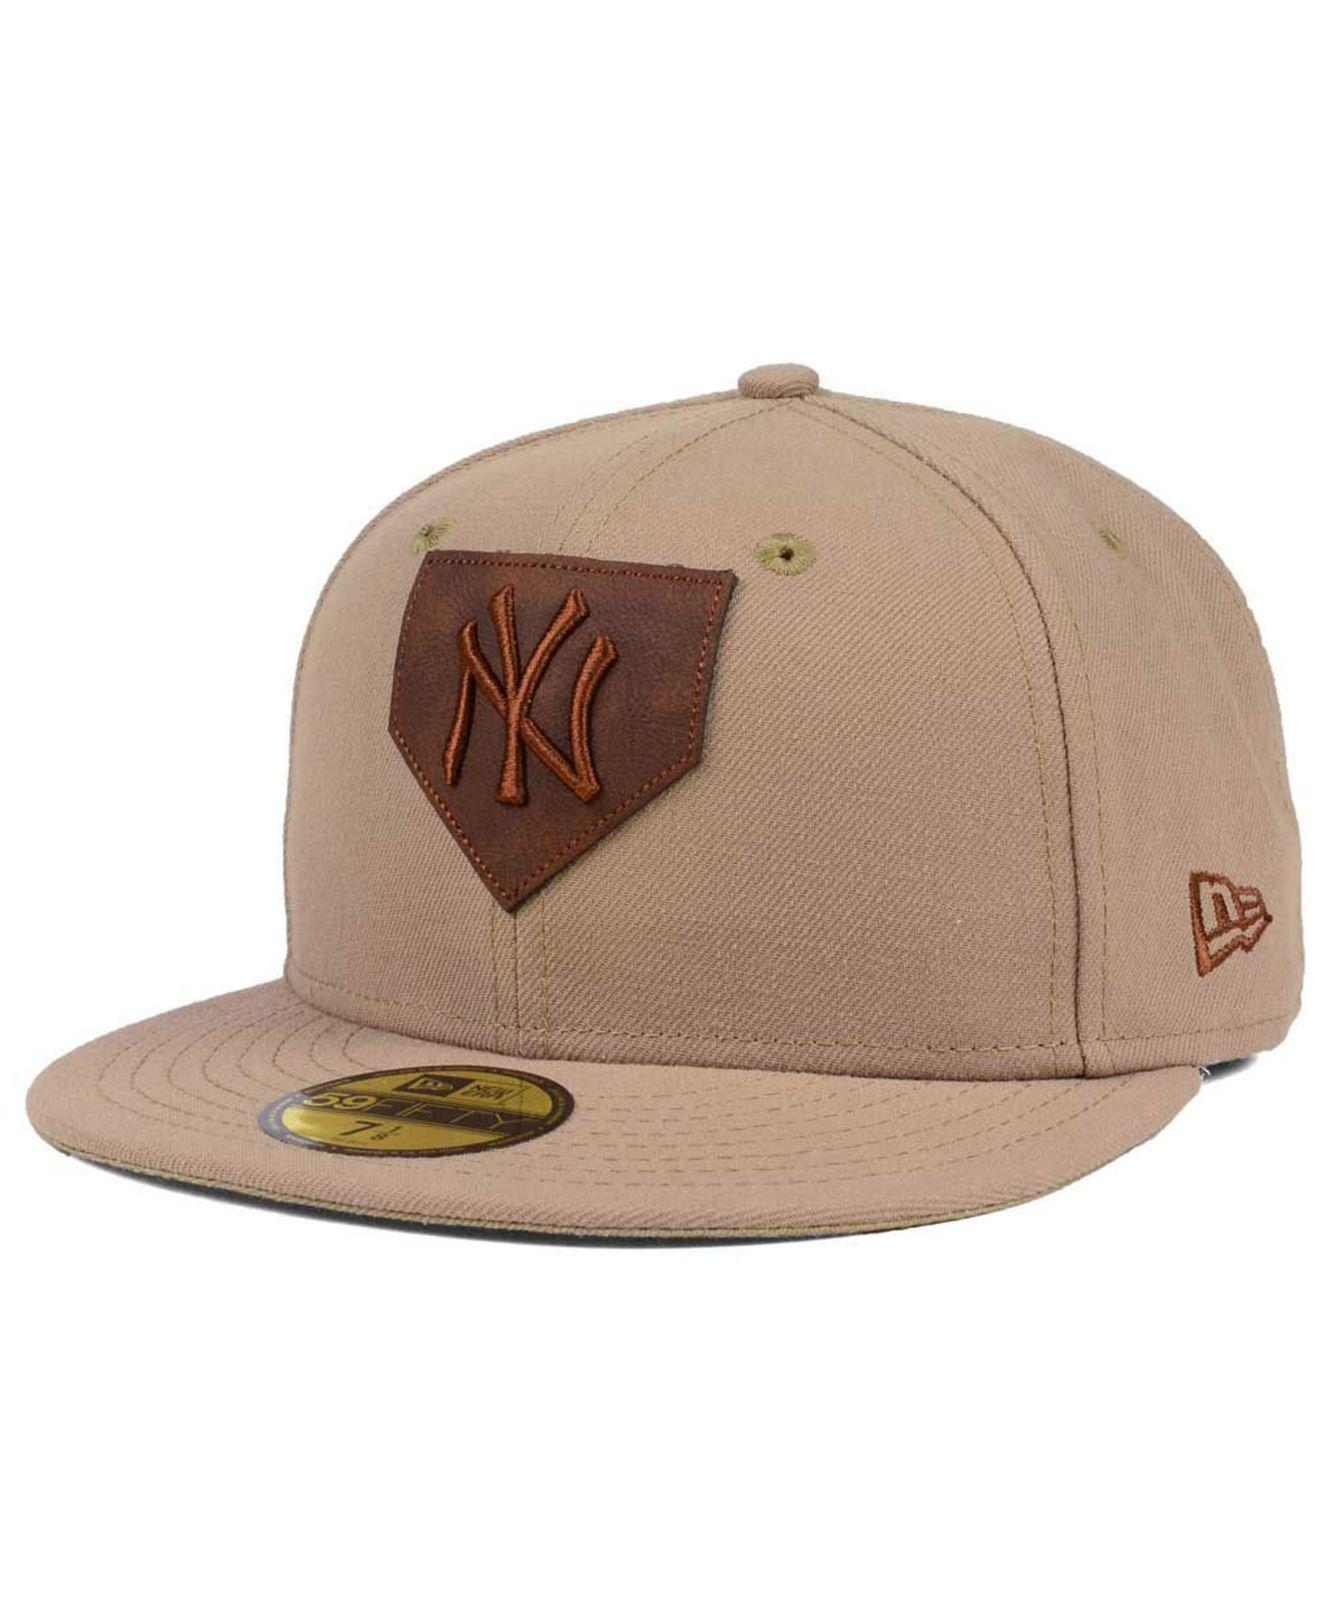 5ef4adfb013 Lyst - KTZ The Logo Of Leather 59fifty Fitted Cap in Brown for Men